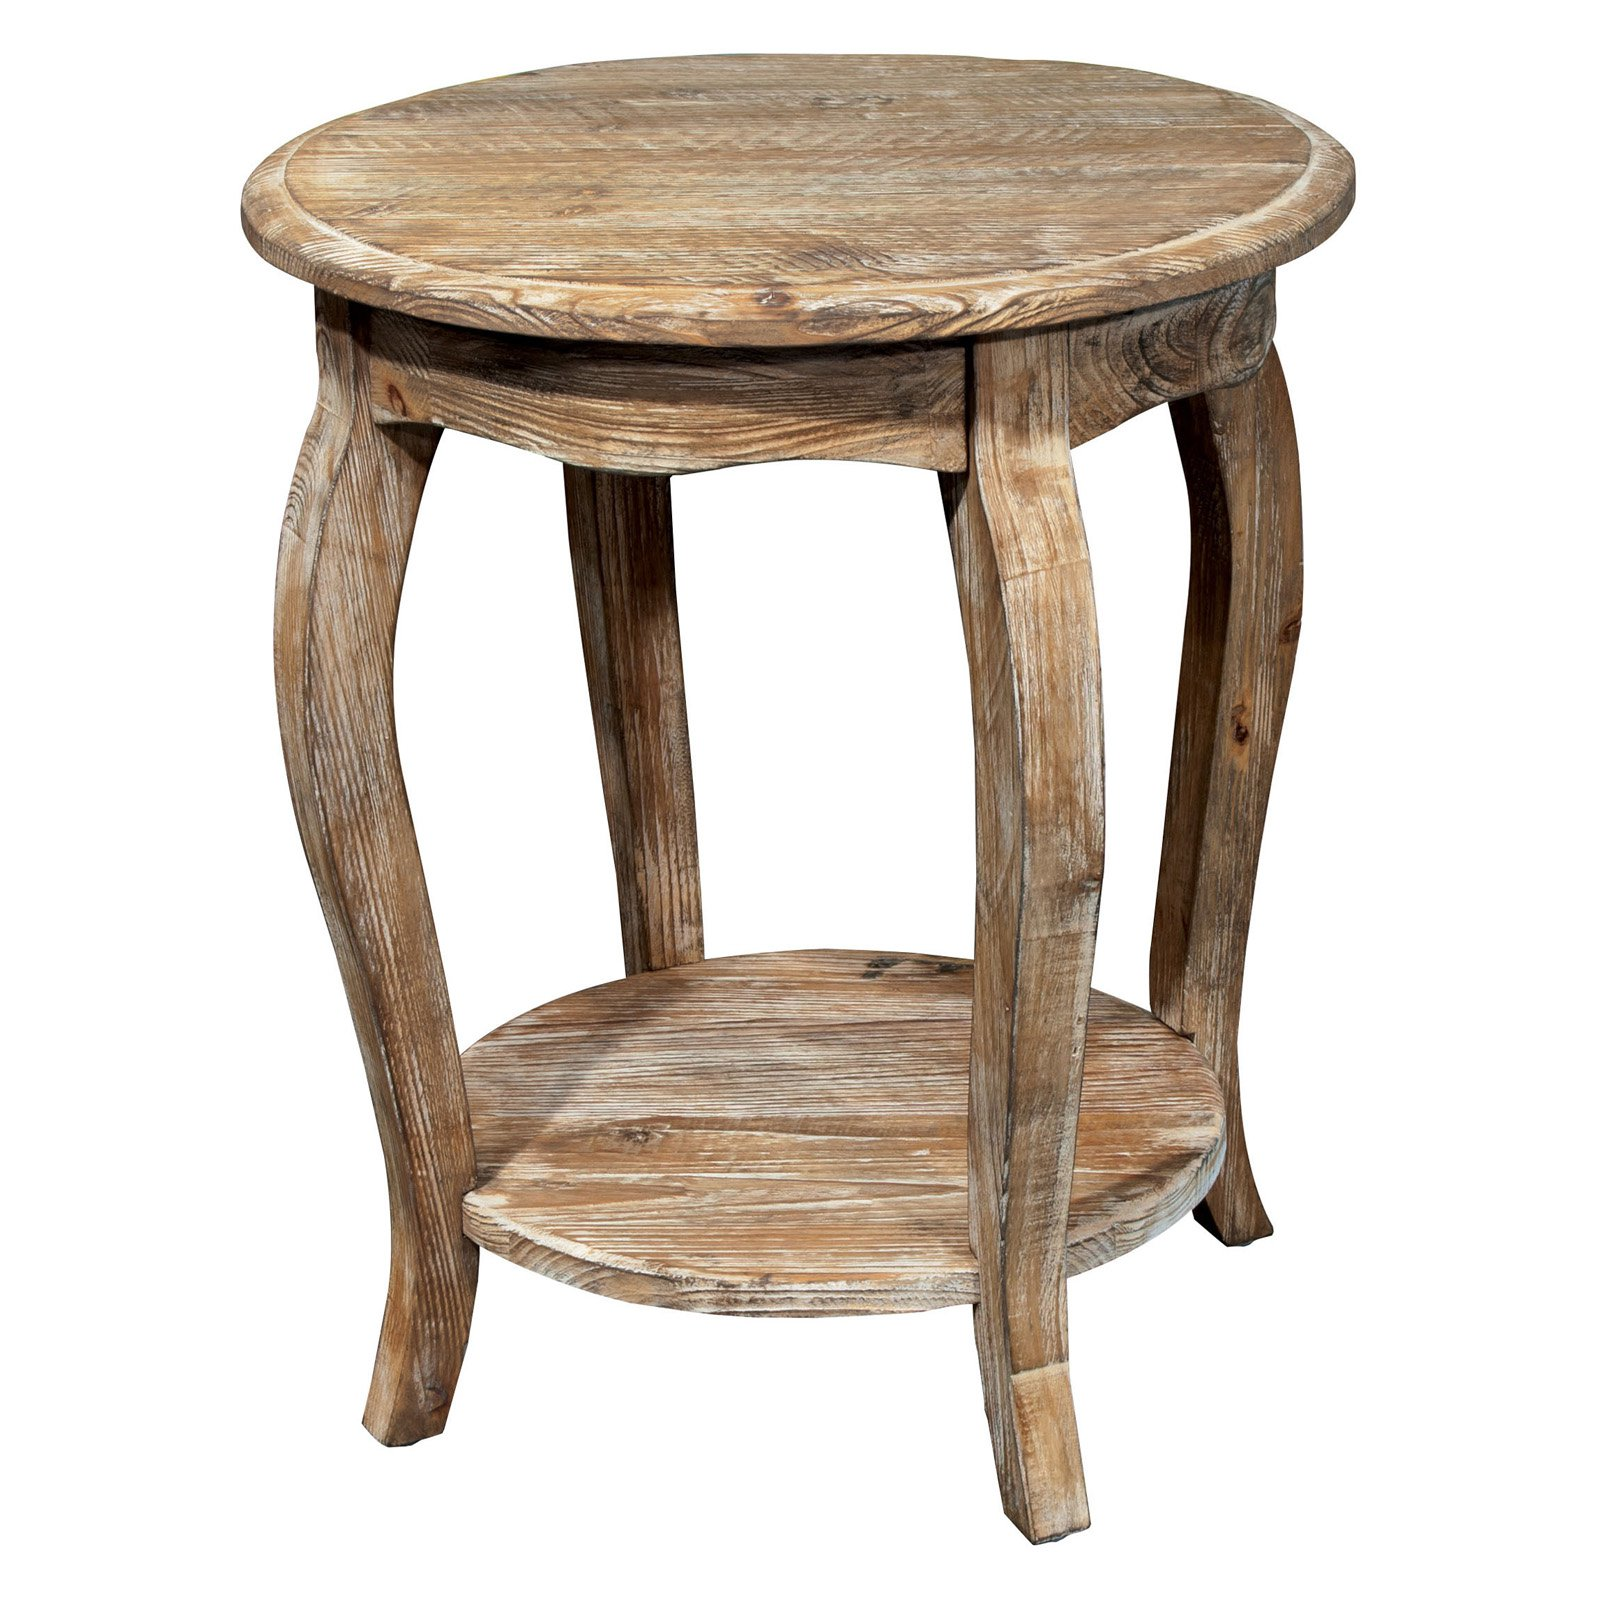 Delicieux Rustic Reclaimed Round End Table, Driftwood   Walmart.com